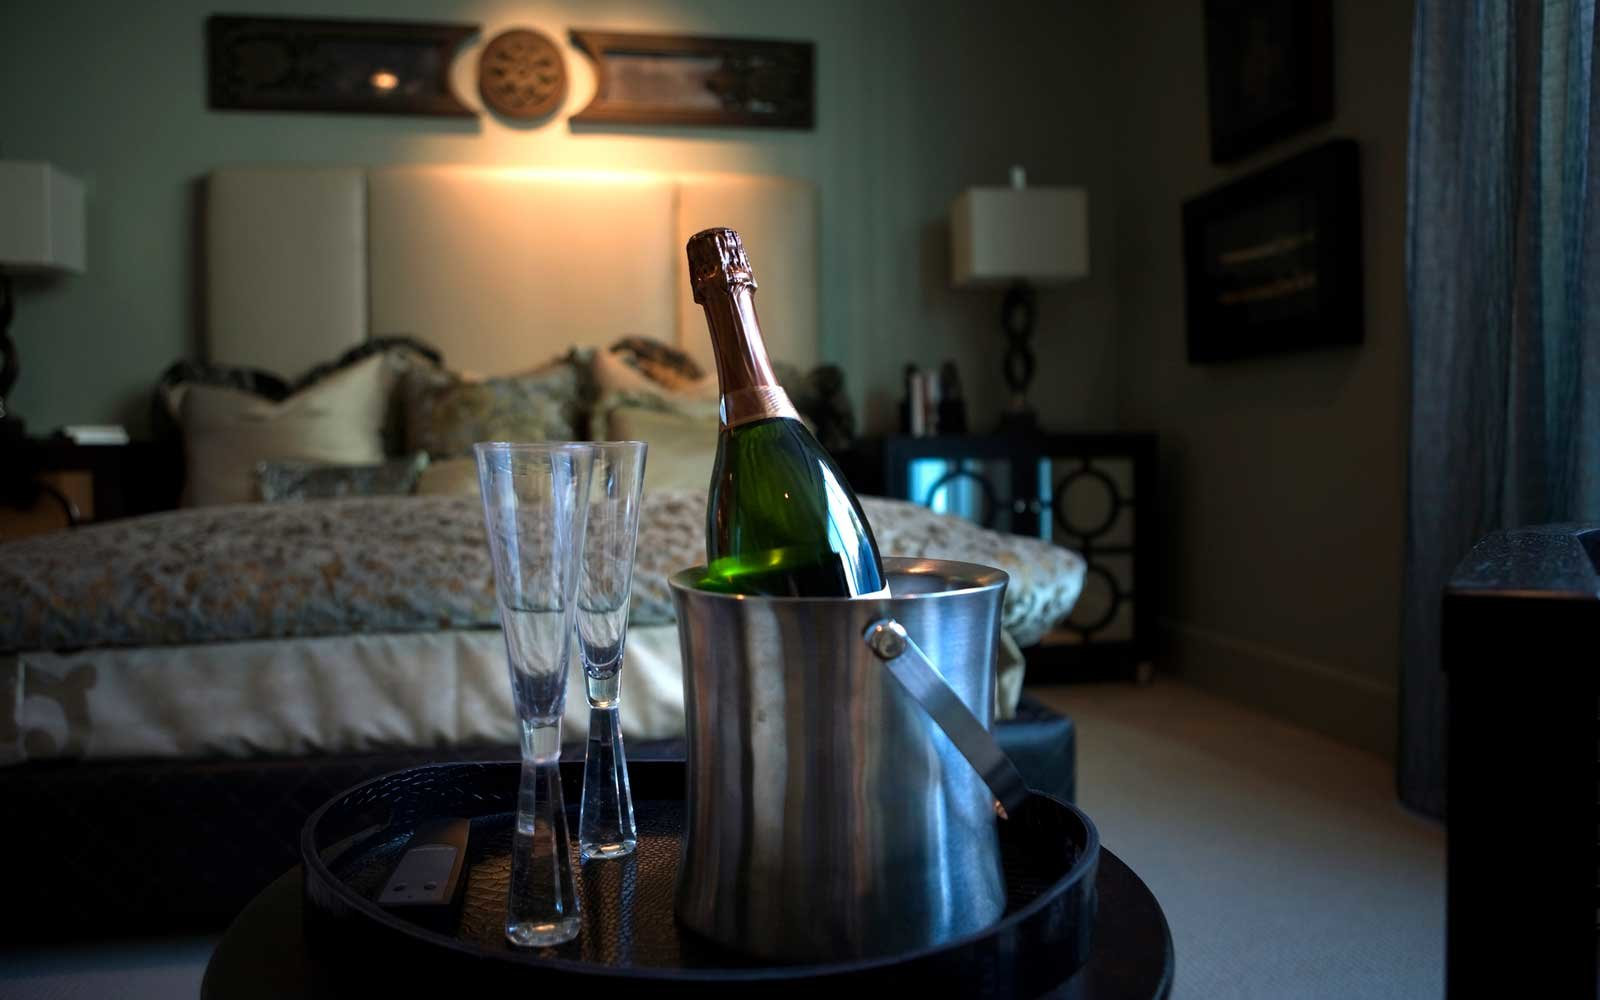 Hotel room with champagne